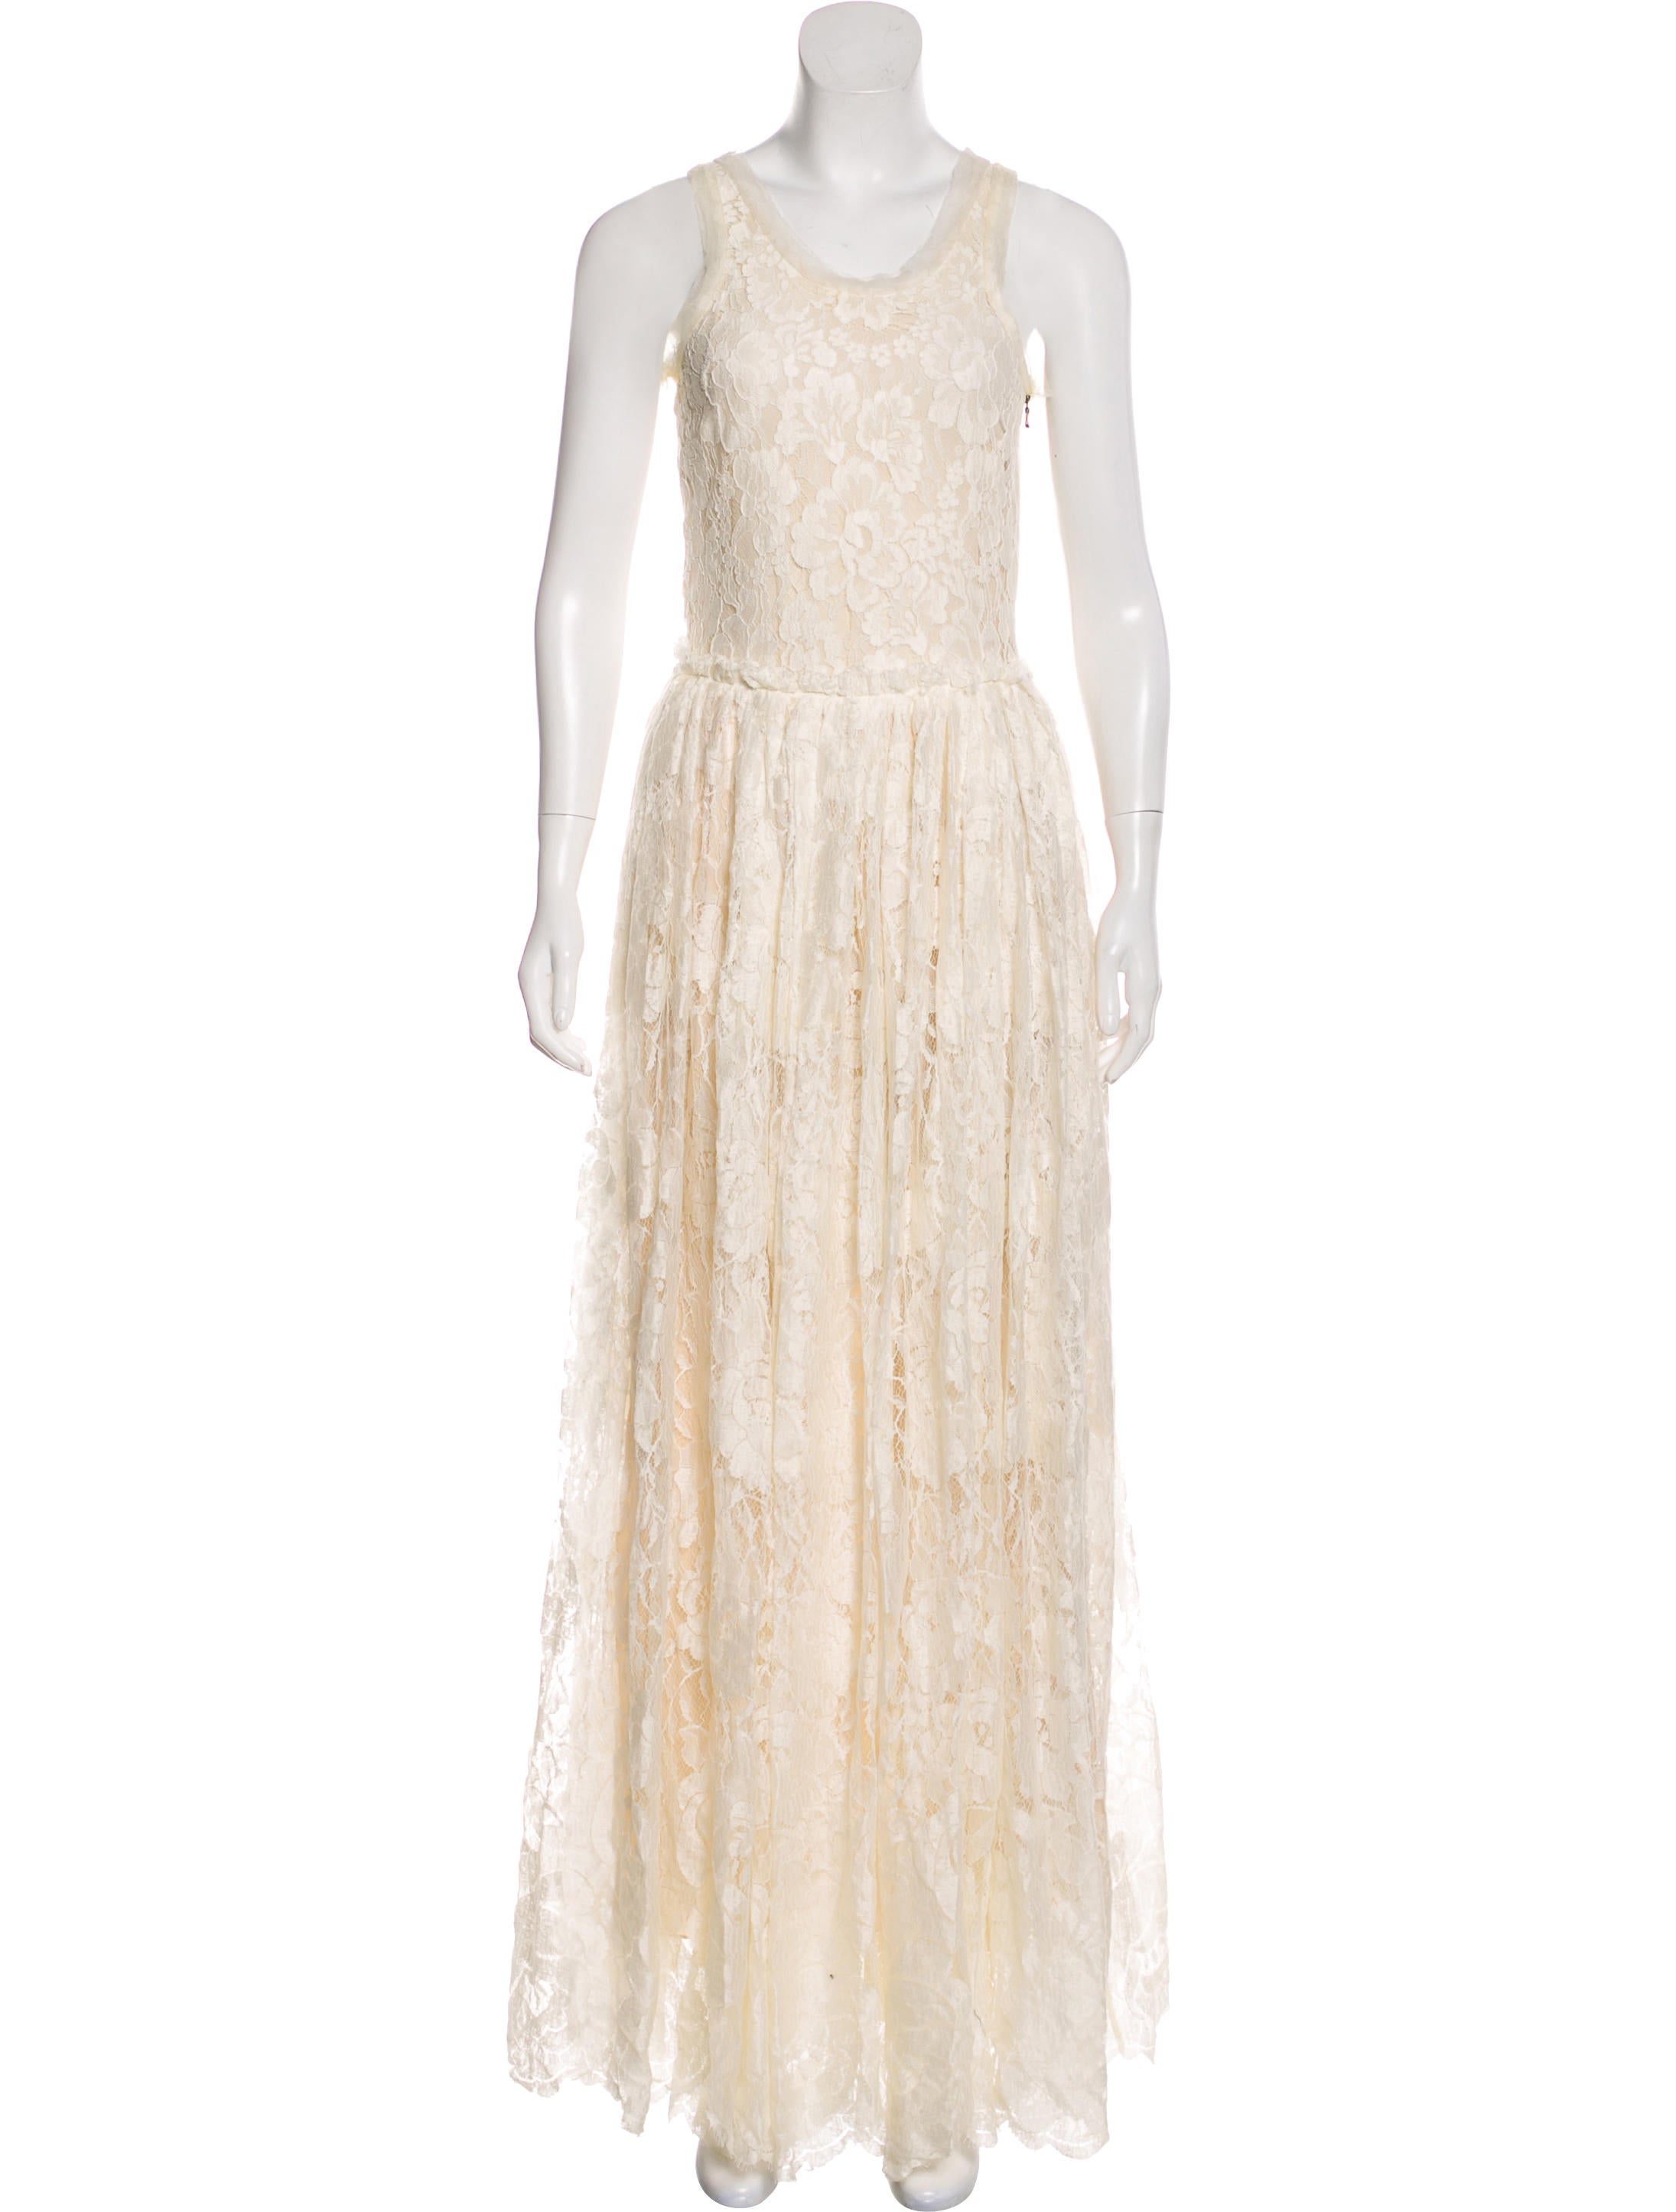 Lanvin Lace Wedding Gown - Clothing - LAN79933   The RealReal